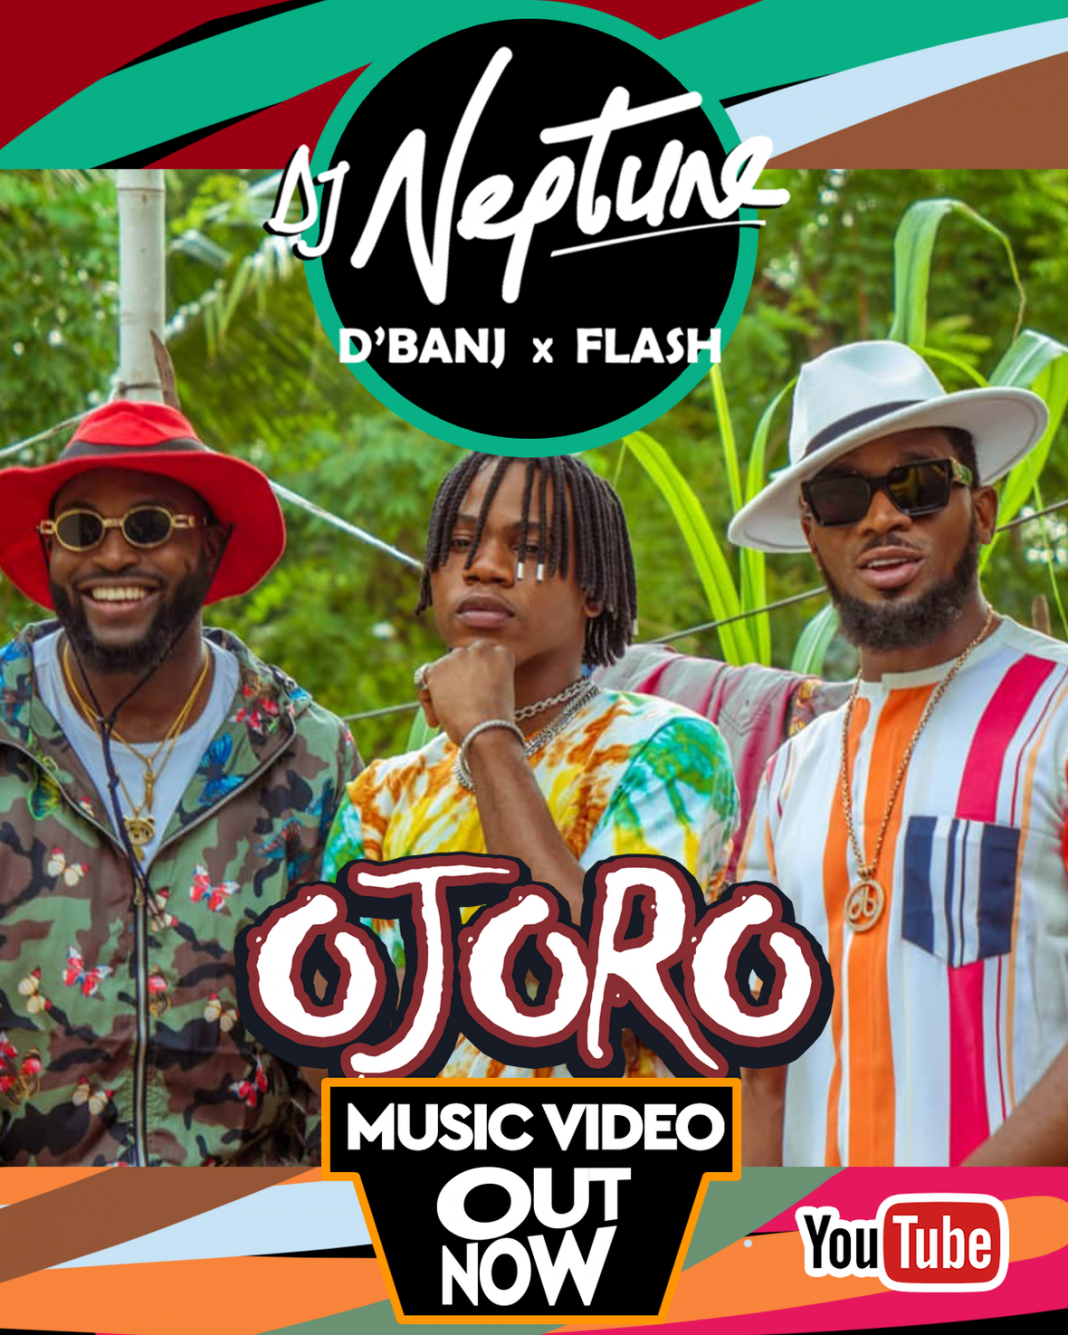 VIDEO: DJ Neptune – OJORO Ft. D' Banj & Flash